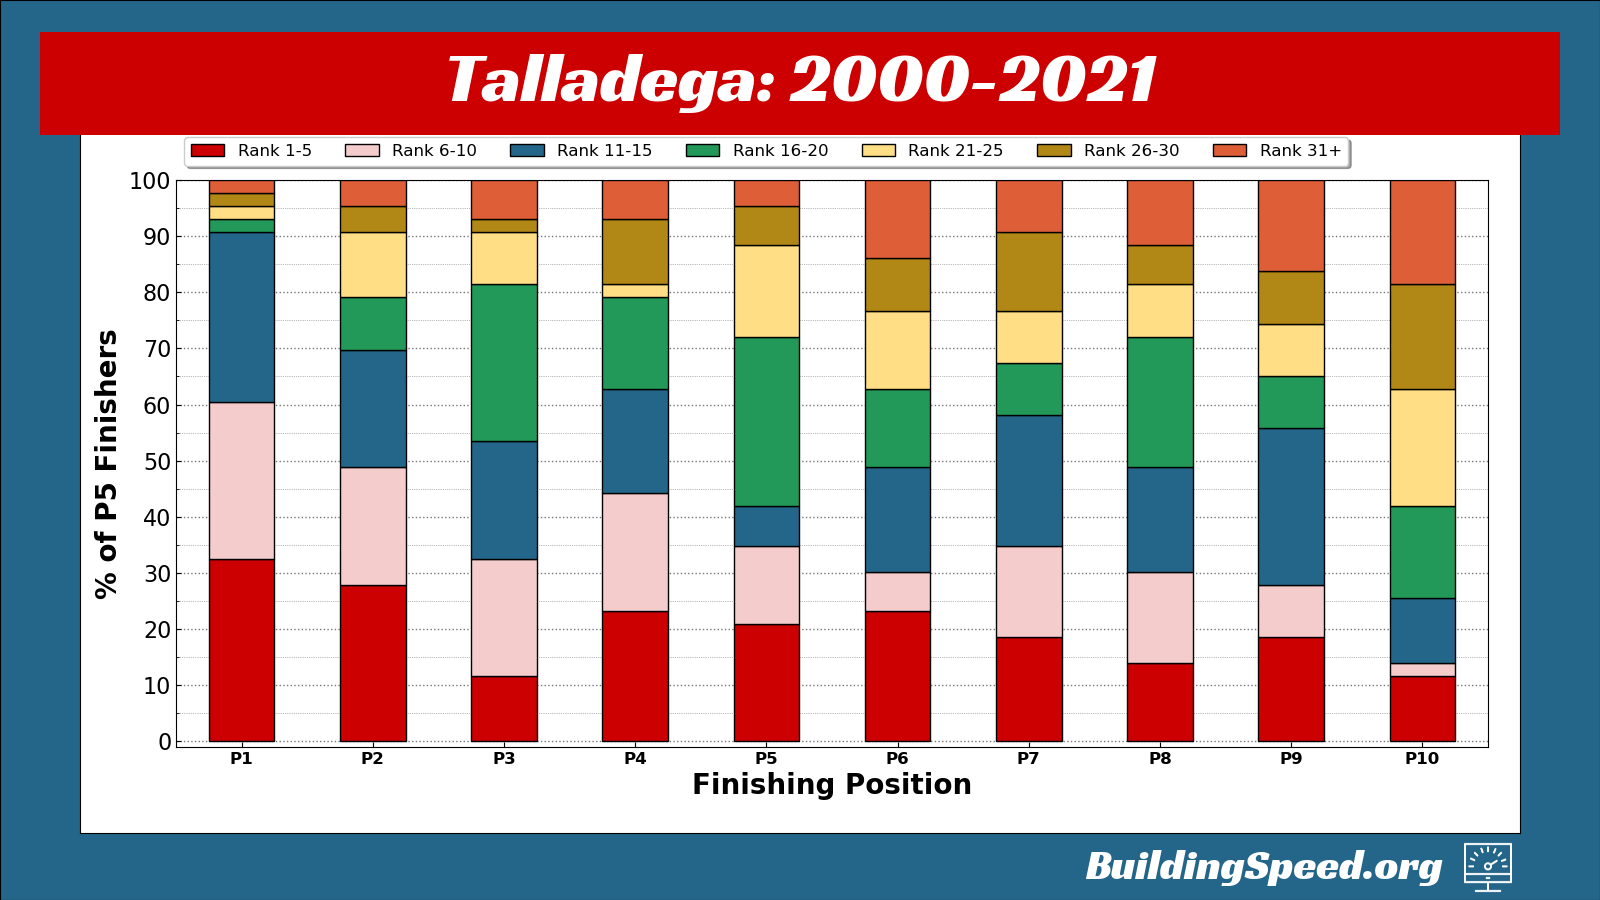 This stacked column chart shows all the rankings for drivers who have finished in the top 10 at all Talladega races.